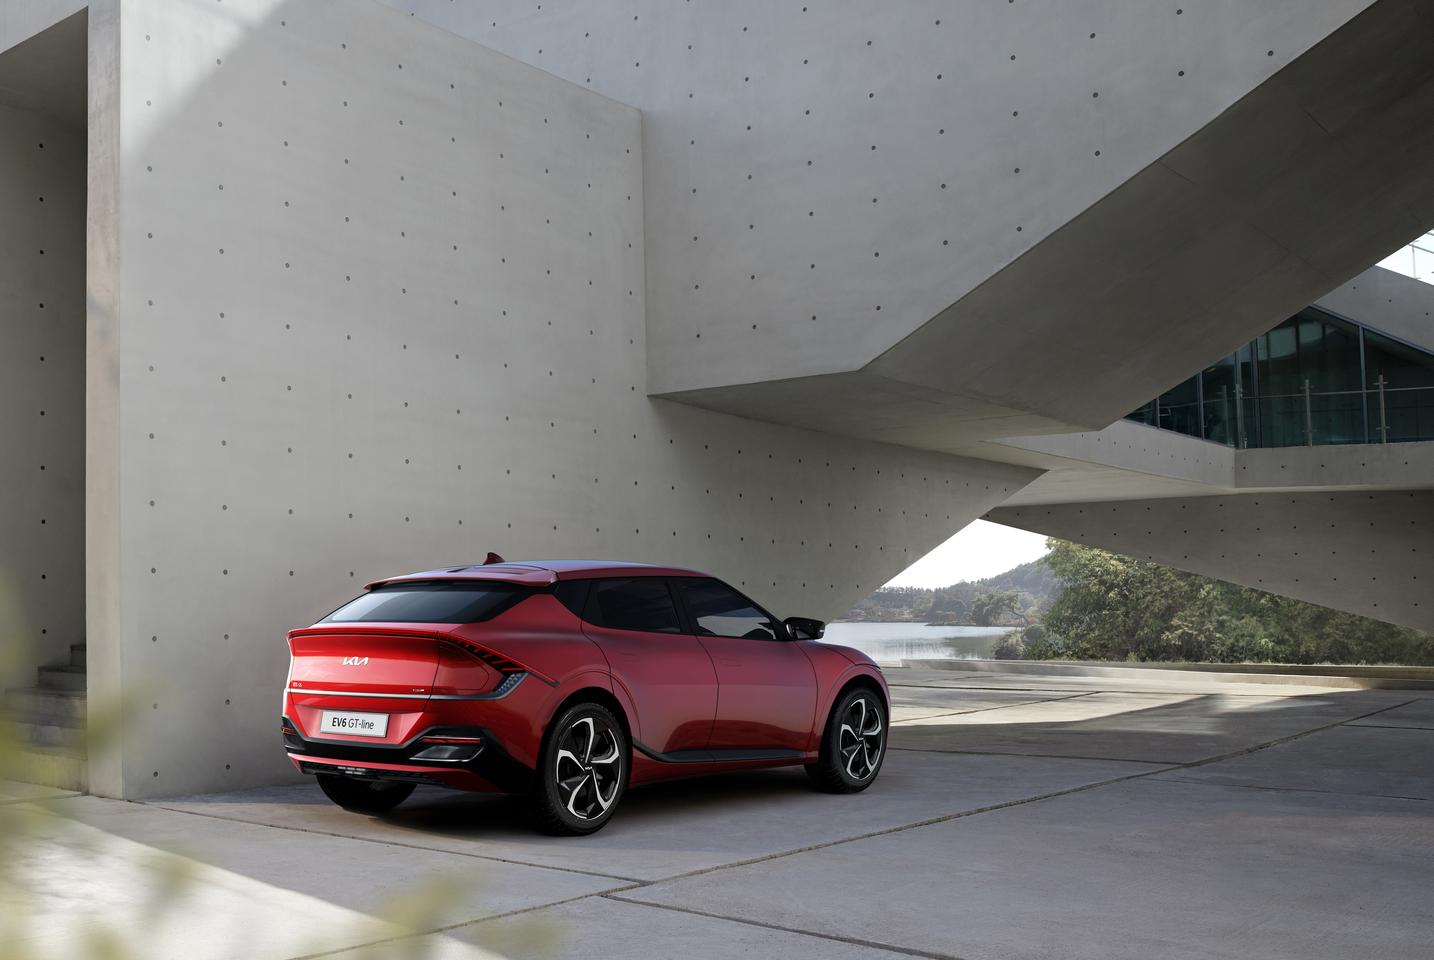 When equipped with the dual-motor GT powertrain, the EV6 sprints to 62 mph in 3.5 seconds